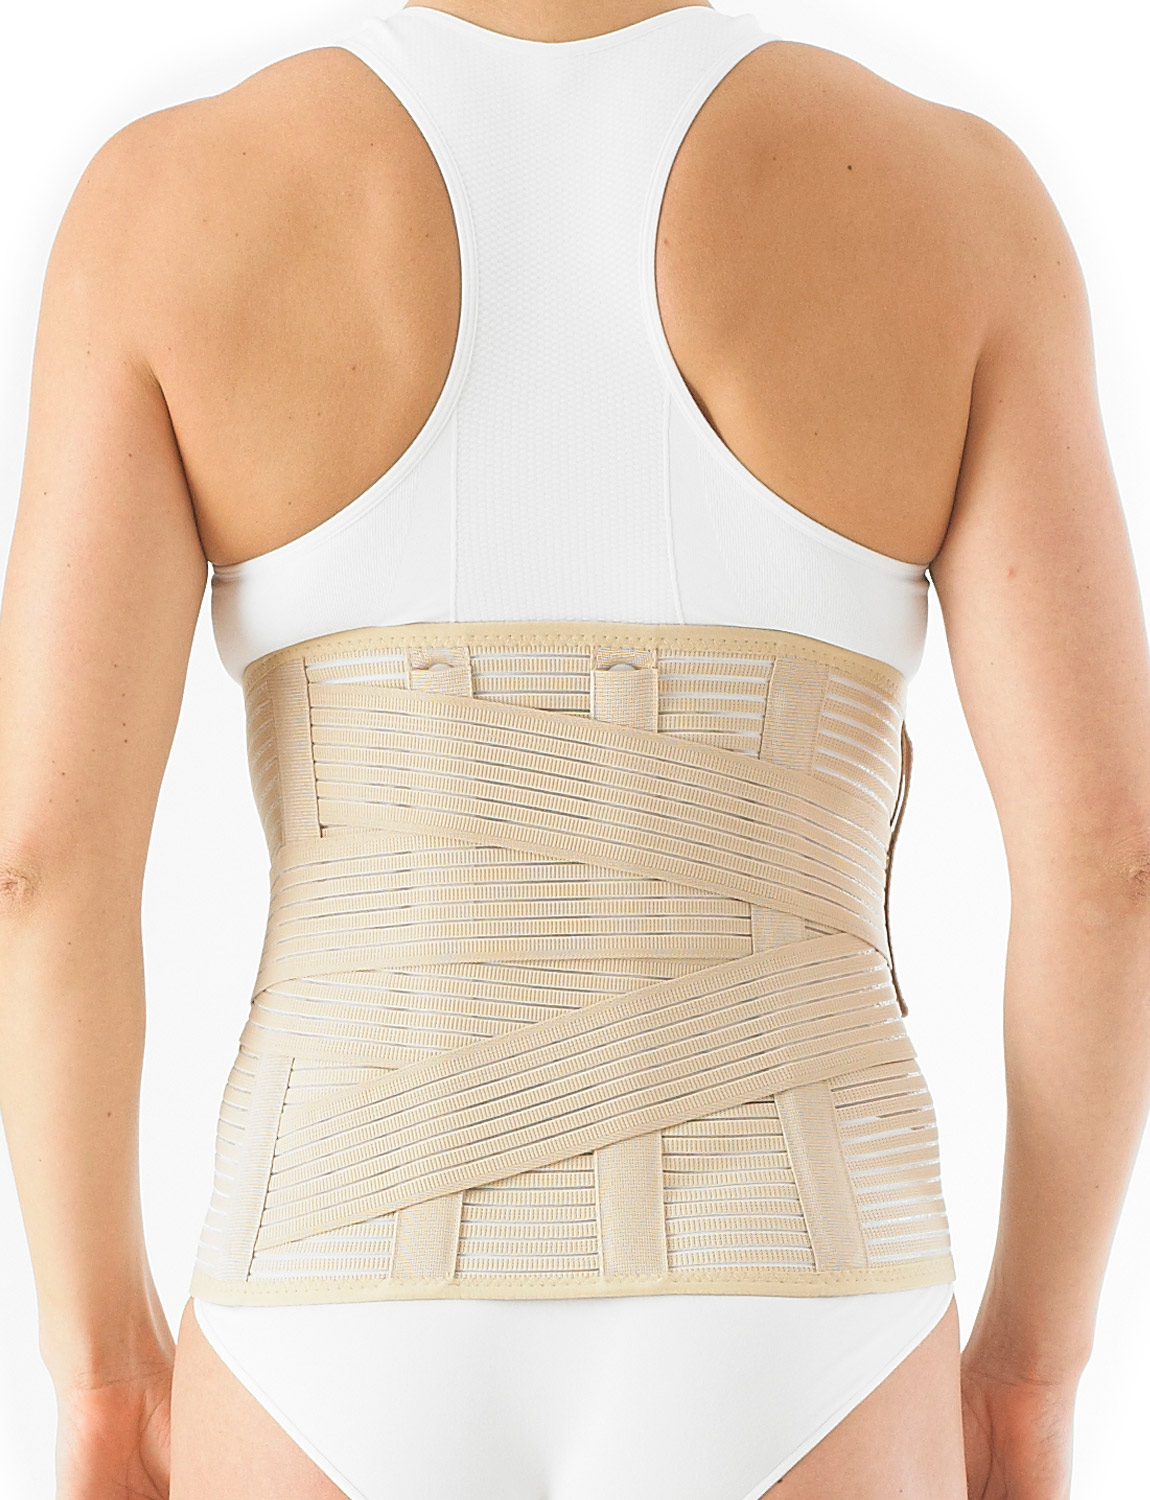 131 - LUMBOSACRAL SUPPORT/BRACE  It can help ease pressure on mild disc herniation and bulging as well as mild lumbago and also helps maintain proper alignment of the lumbar spine to encourage rehabilitation.